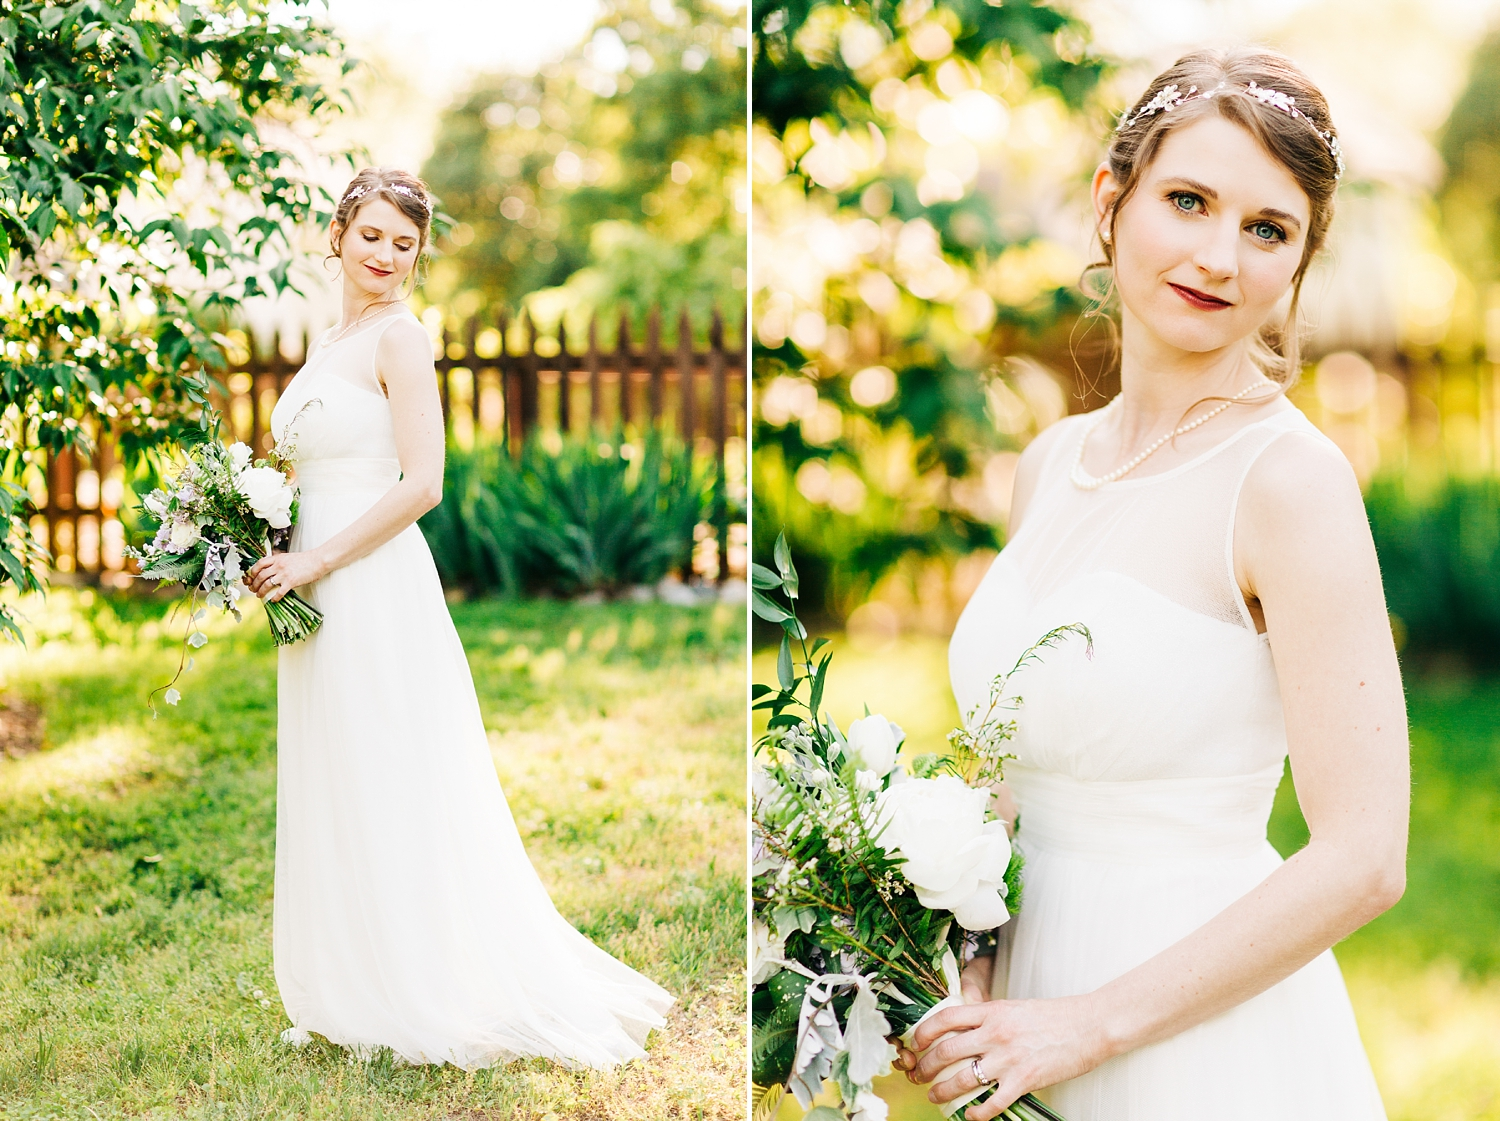 bridal portrait in the gardens at mordecai park in downtown raleigh by rachael bowman photography